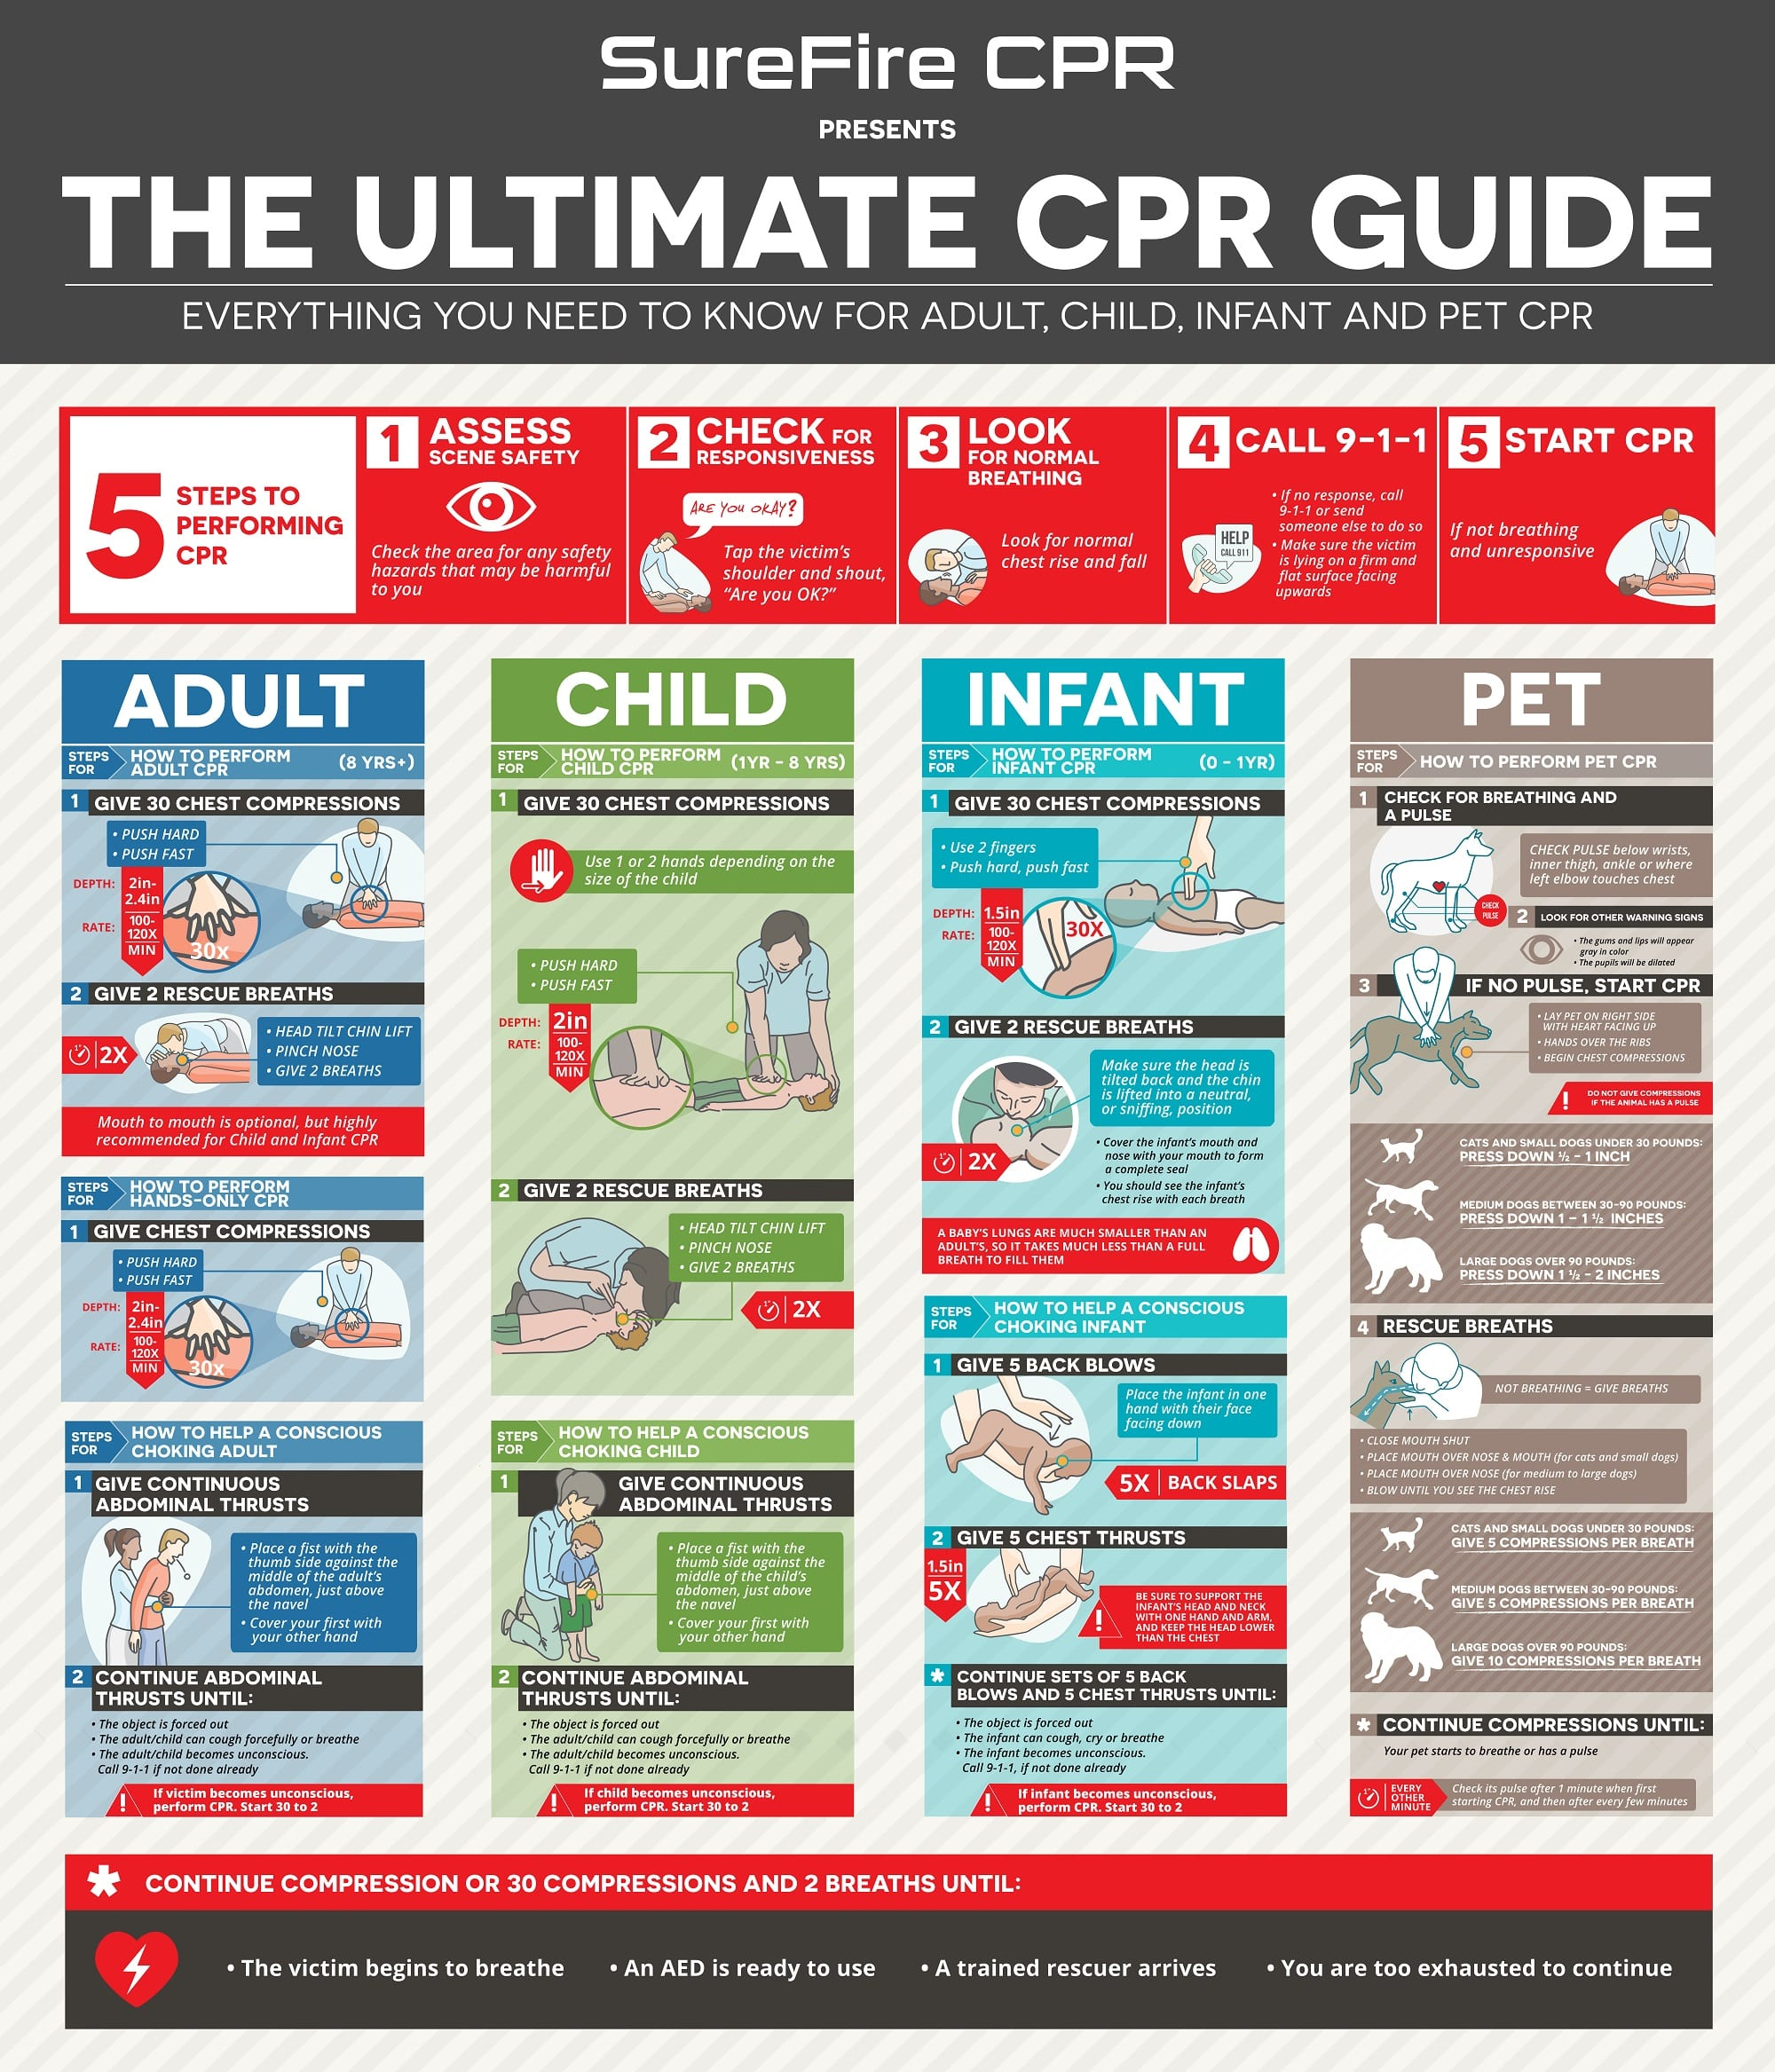 The ultimate cpr guide surefire cpr everything you need to know for adult child infant and pet cpr xflitez Images